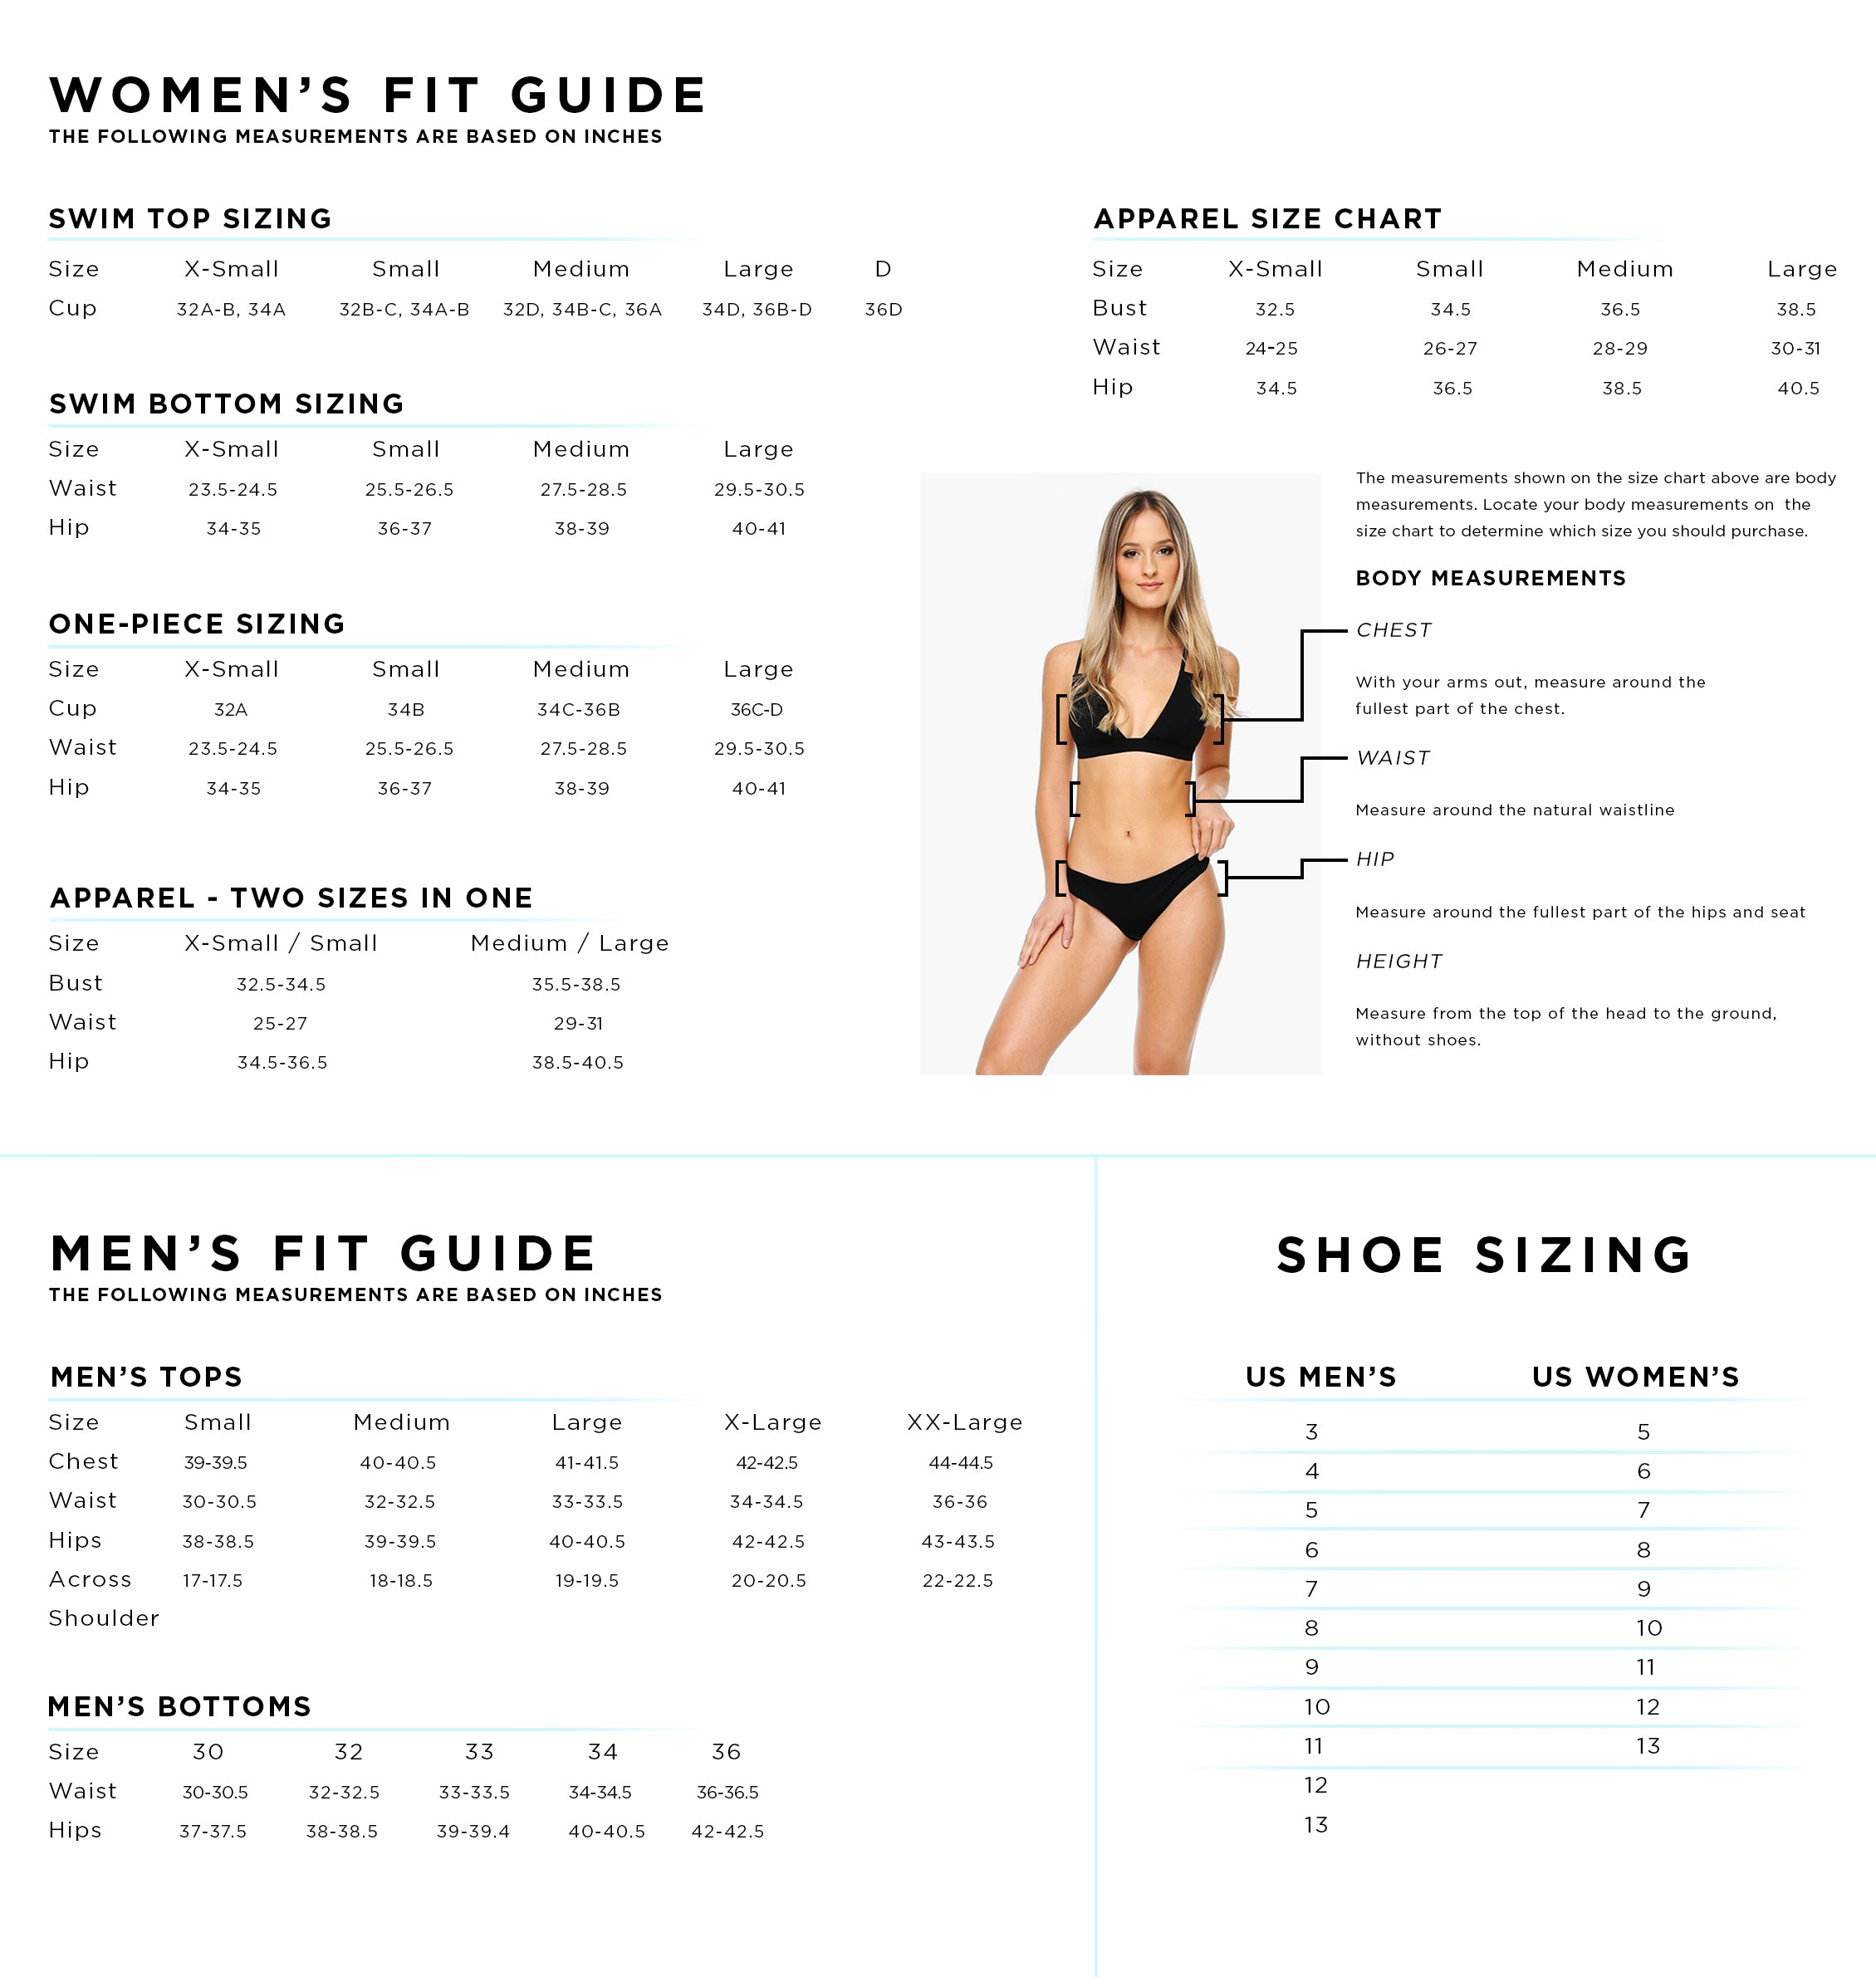 Men's and Women's Shore size chart